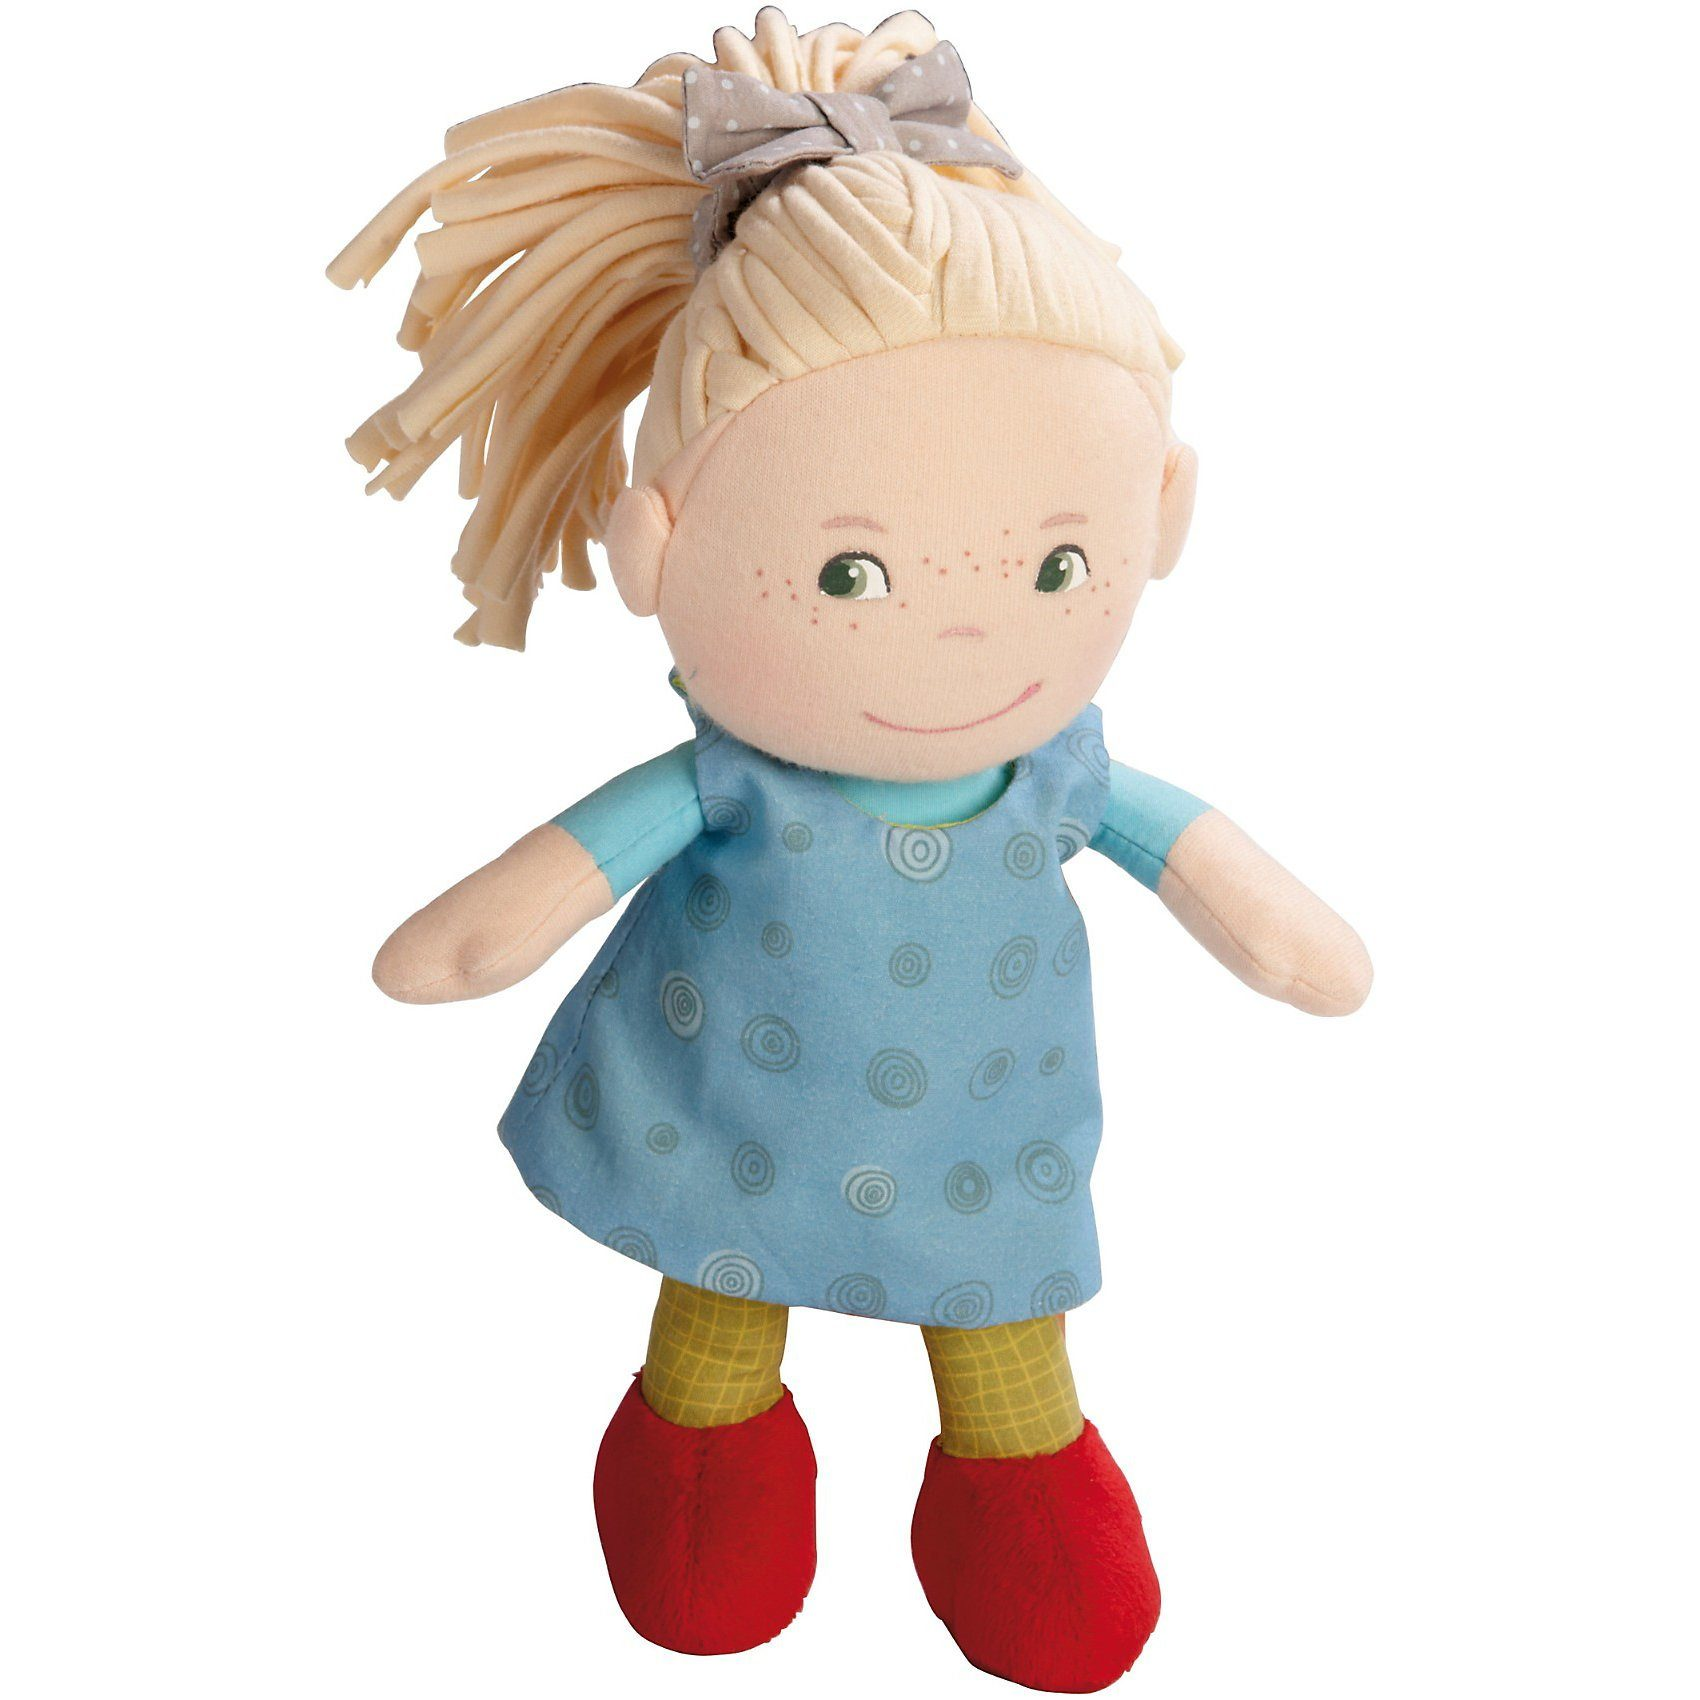 Haba 5738 Stoffpuppe Mirle, 20 cm